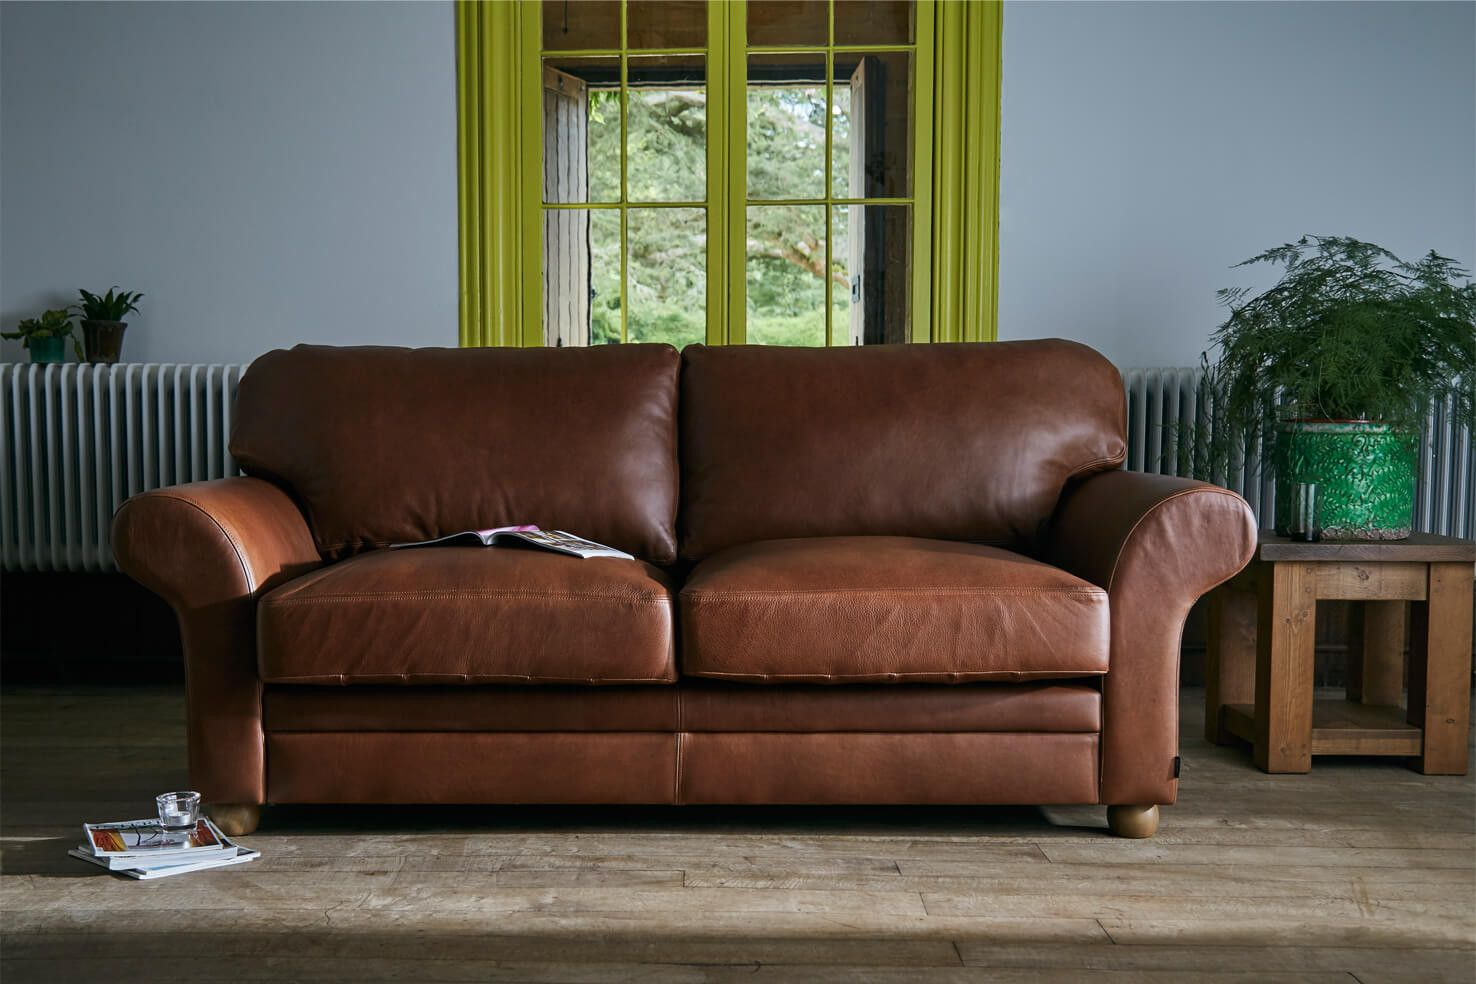 Terrific The Curved Arm Leather Sofa Sofas In 2019 Brown Leather Machost Co Dining Chair Design Ideas Machostcouk